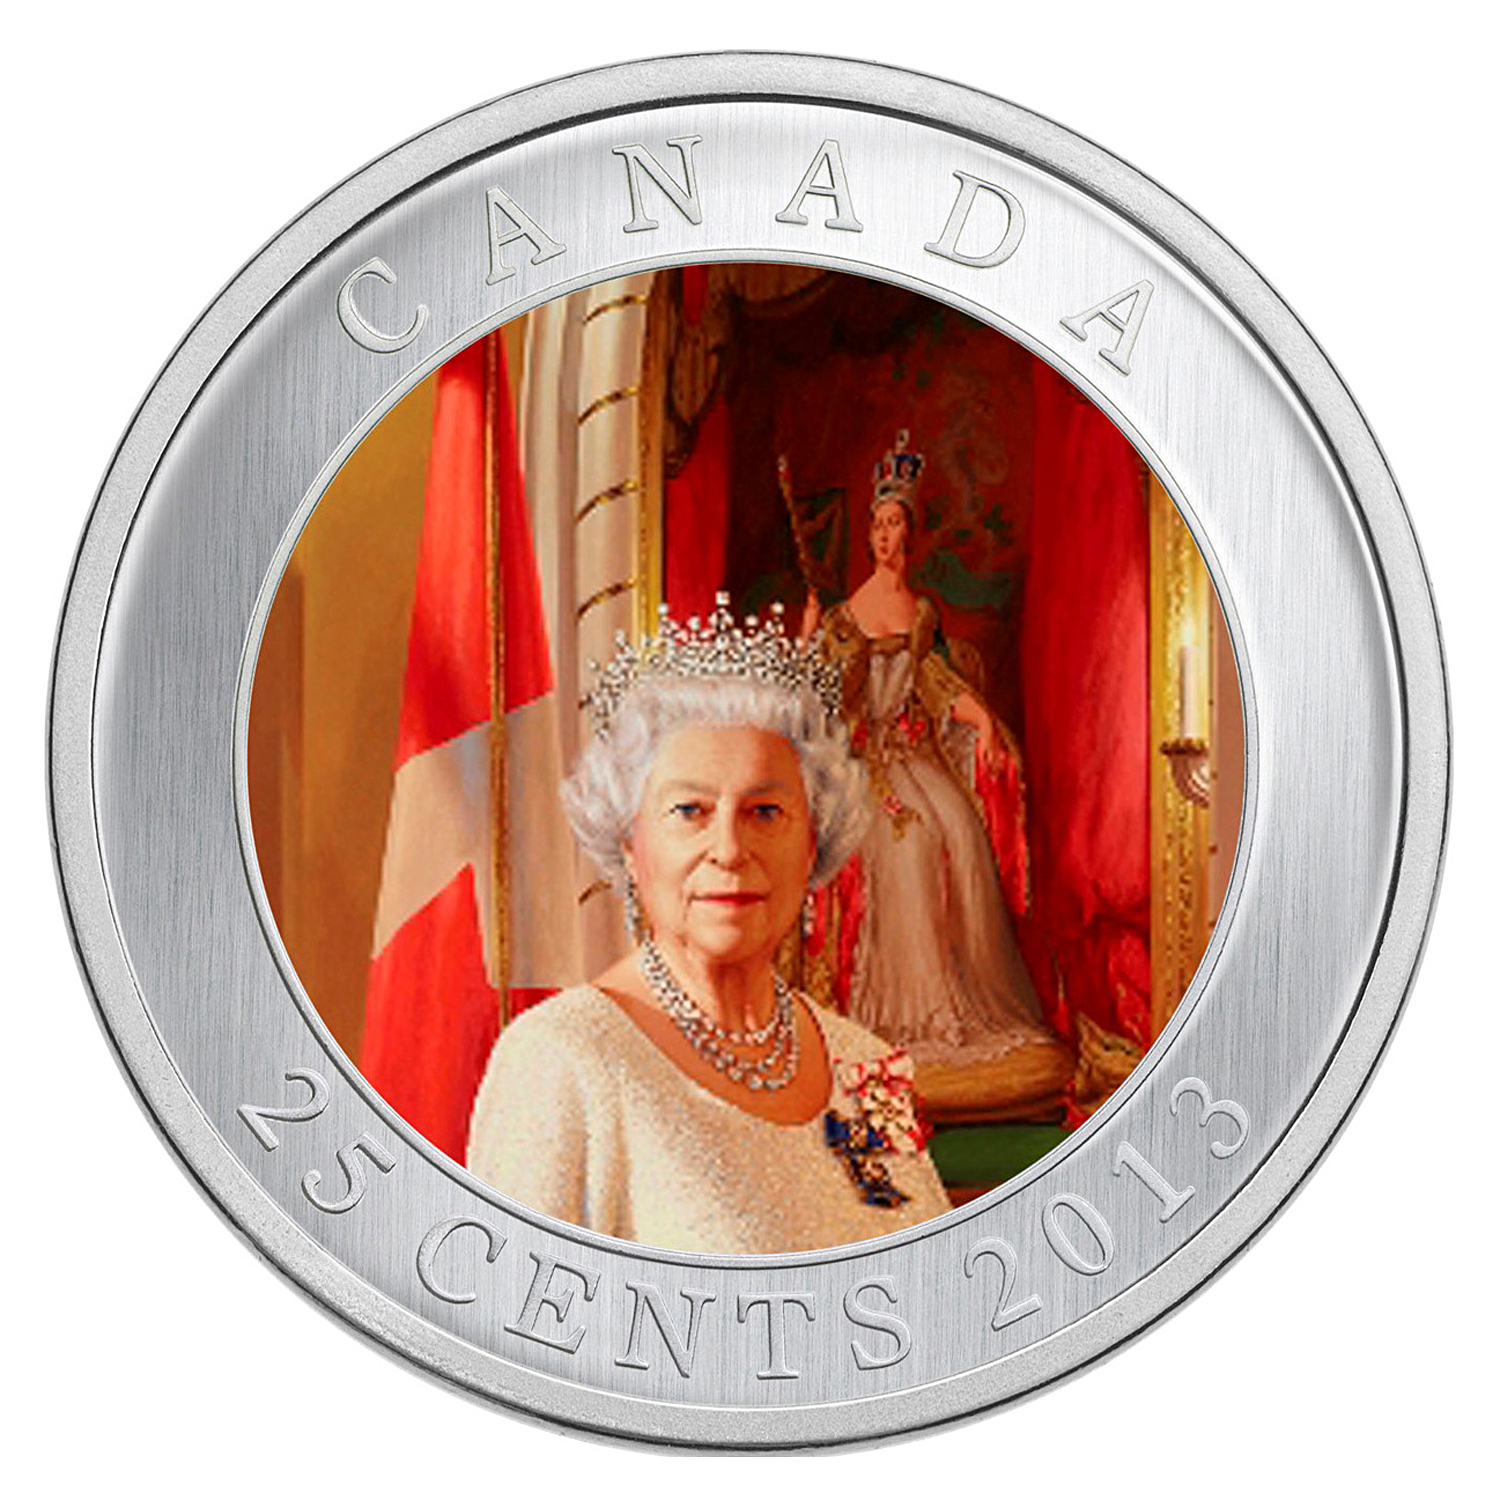 2013 Canada $0.25 Queen Elizabeth II Coronation (Coloured)